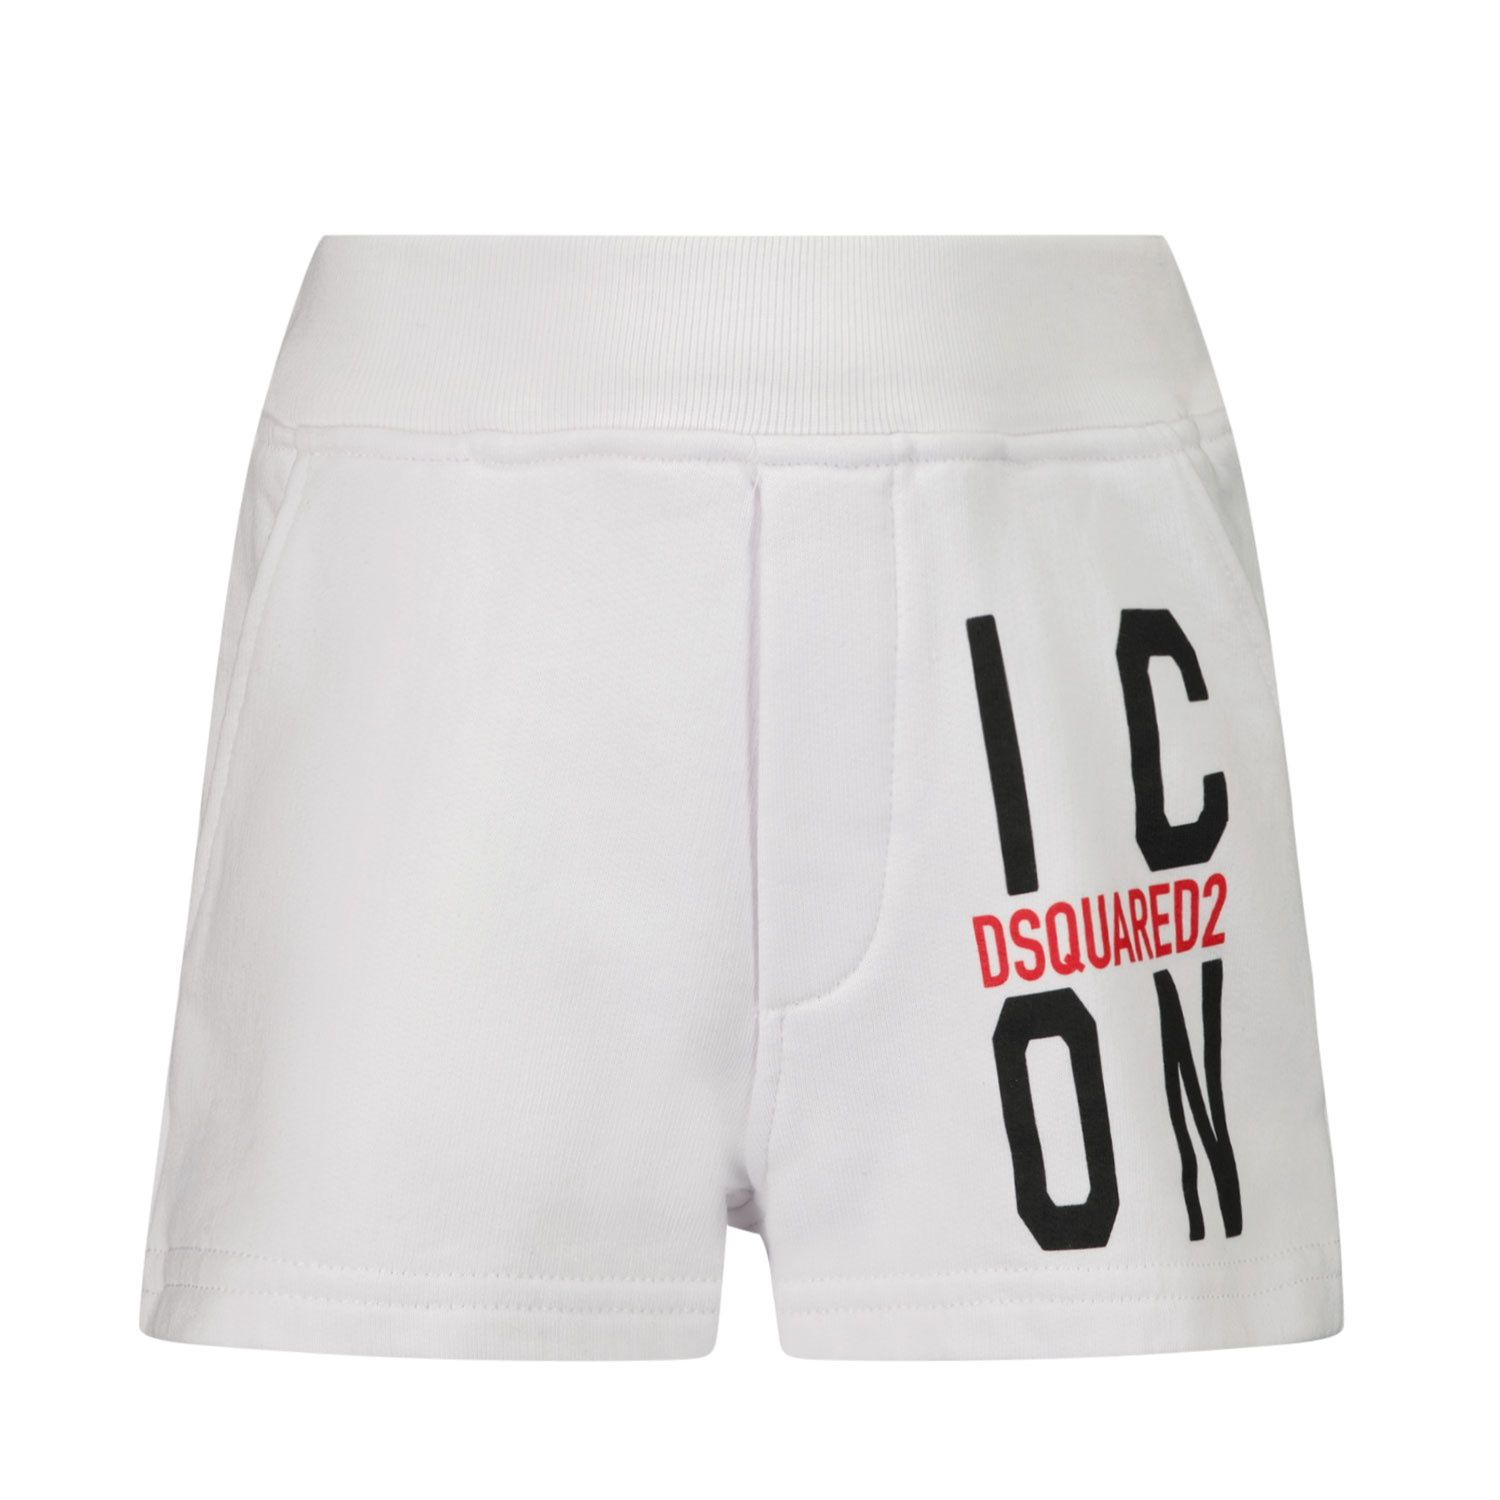 Afbeelding van Dsquared2 DQ0251 baby shorts wit